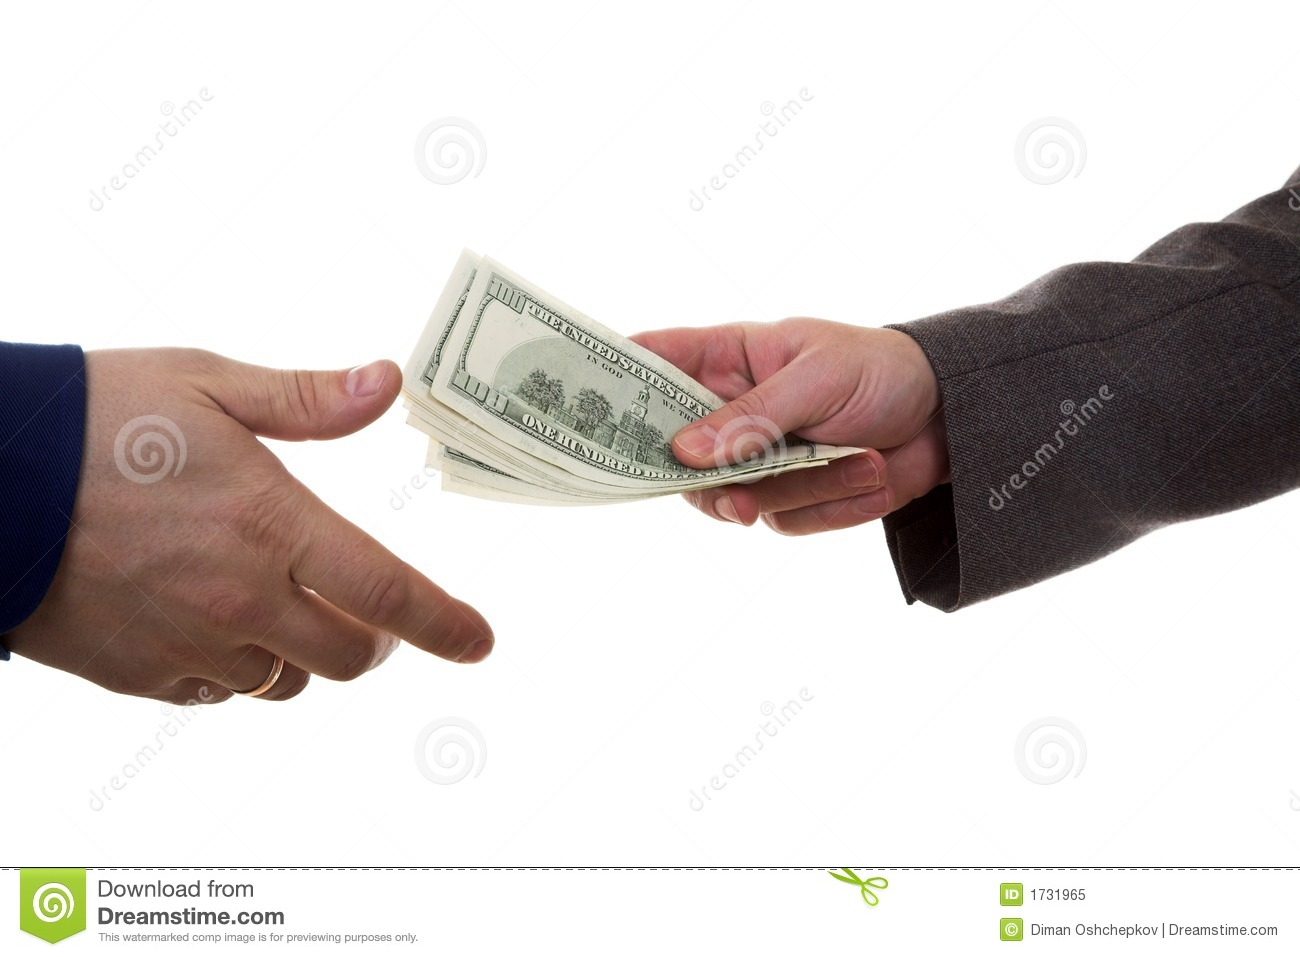 Hands of two men giving and taking dollars (Pay money).